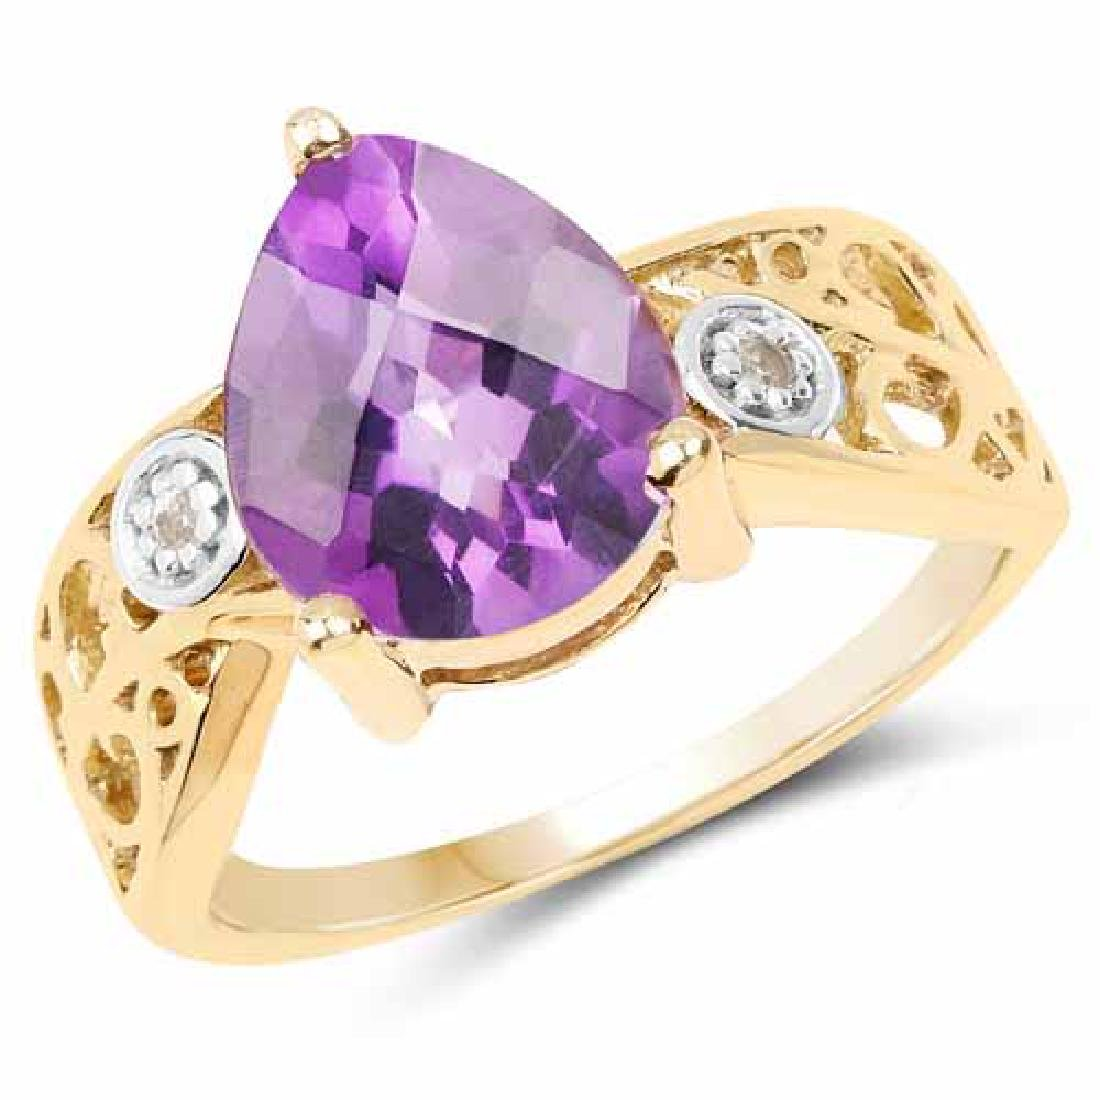 14K Yellow Gold Plated 1.63 Carat Genuine Amethyst and